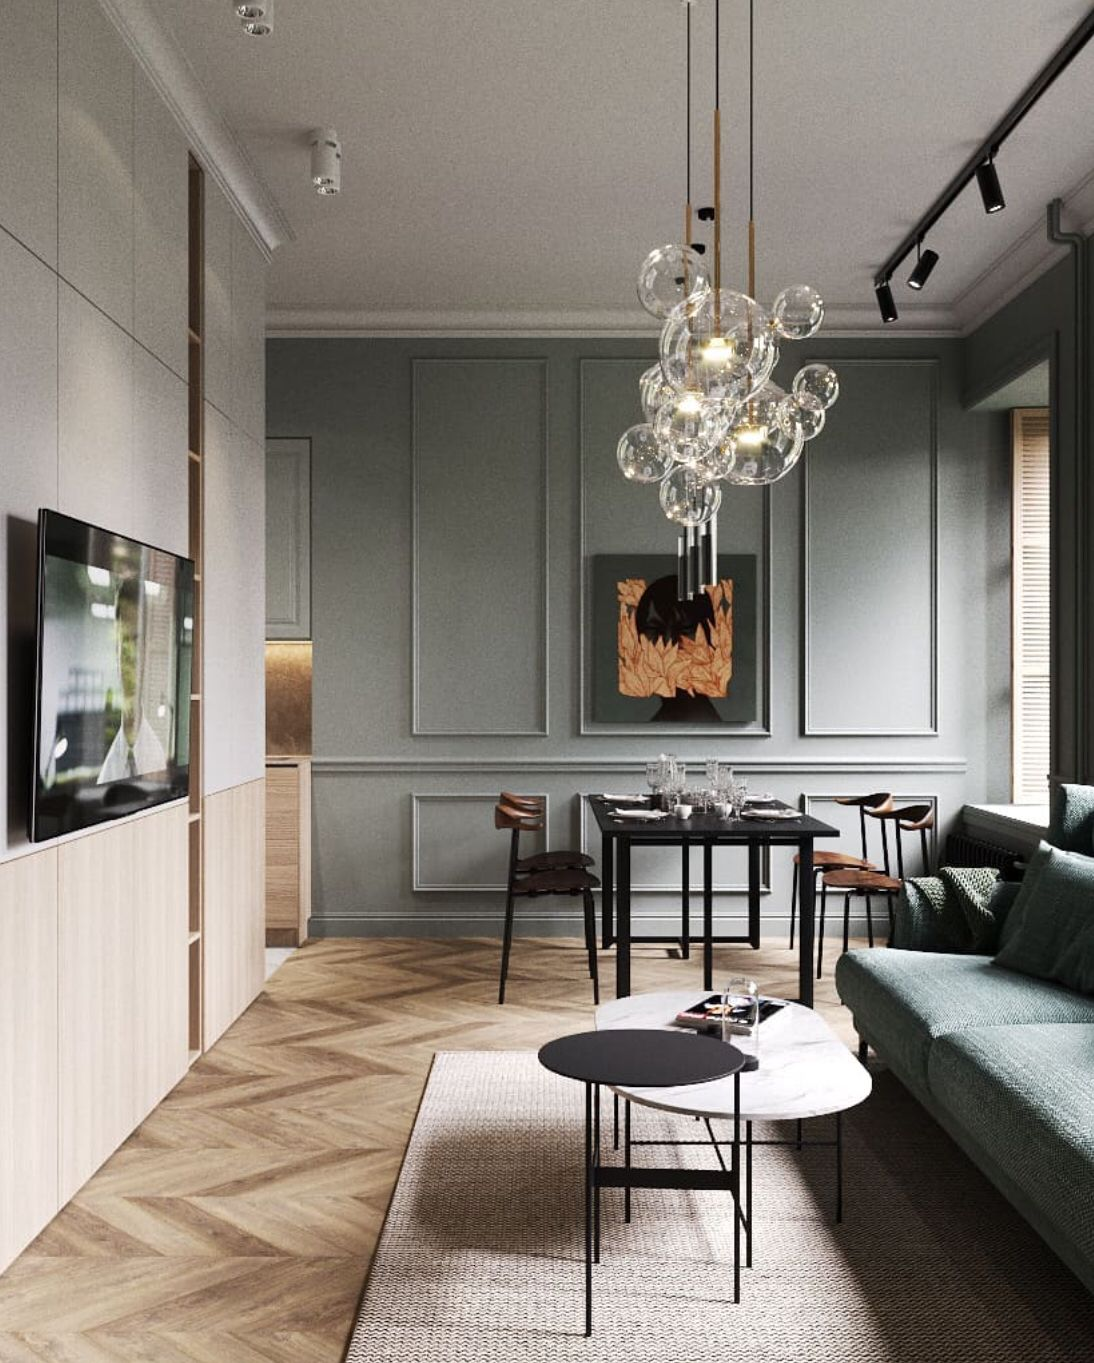 The Space Was Framed With The Furniture And Lighting That Reveals The Color Harmonies And Contrast In 2020 Living Room Design Modern Apartment Interior Interior Design